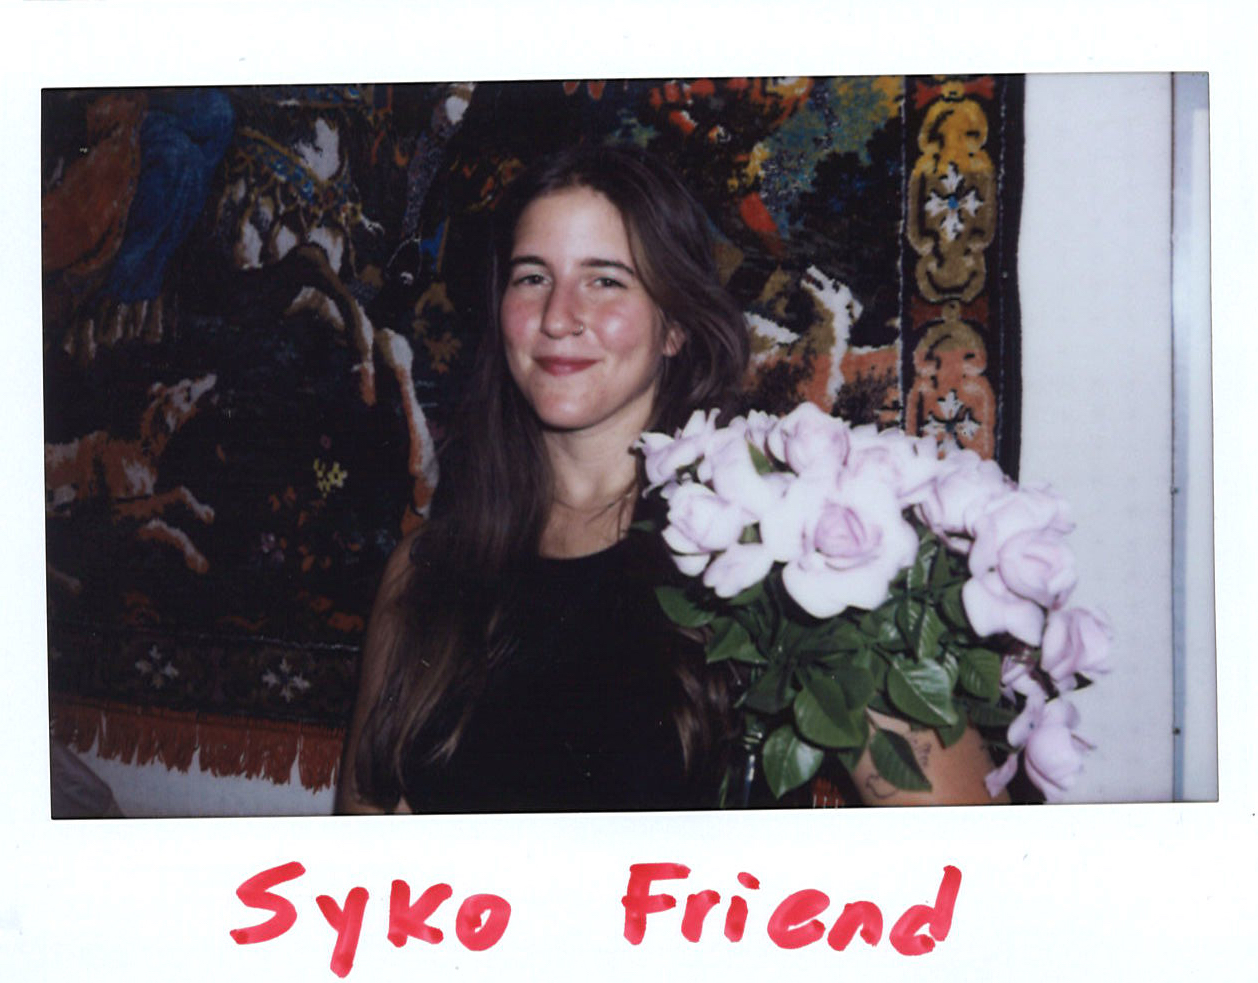 SYKO FRIEND • ALTAMIRA • CHRONOPHAGE — IN-STORE PERFORMANCE